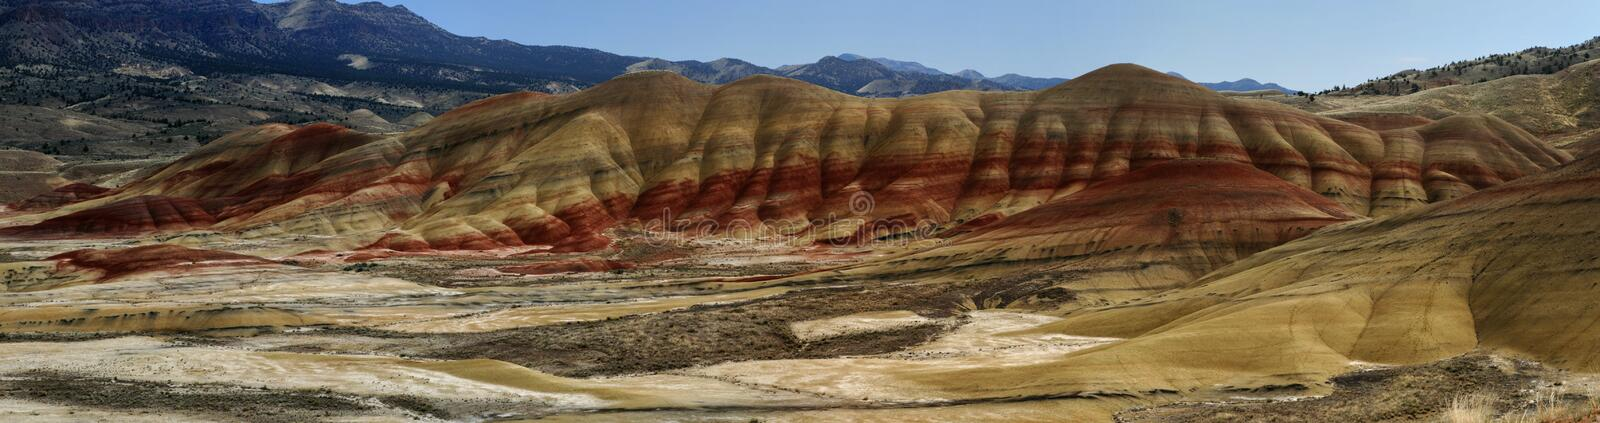 Painted Hills, Oregon royalty free stock image